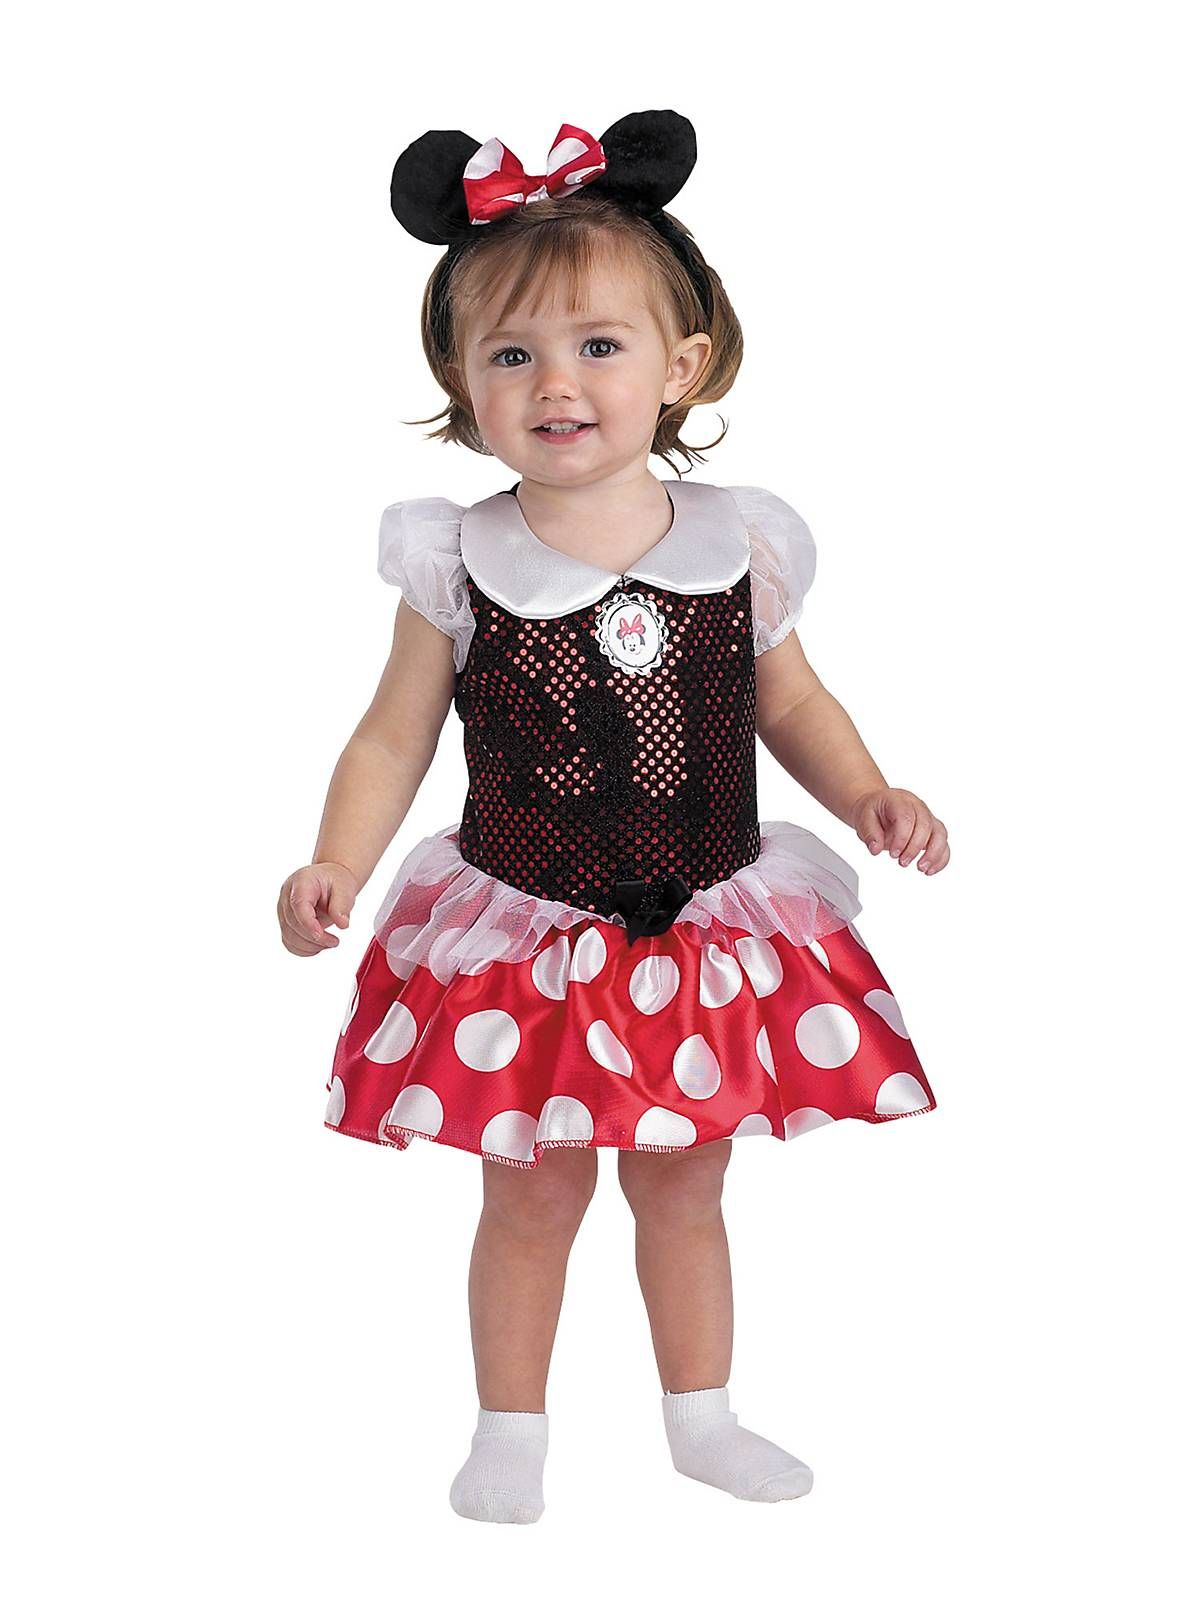 Minnie Mouse Toddler Infant Costume | Minnie mouse, Toddler ...